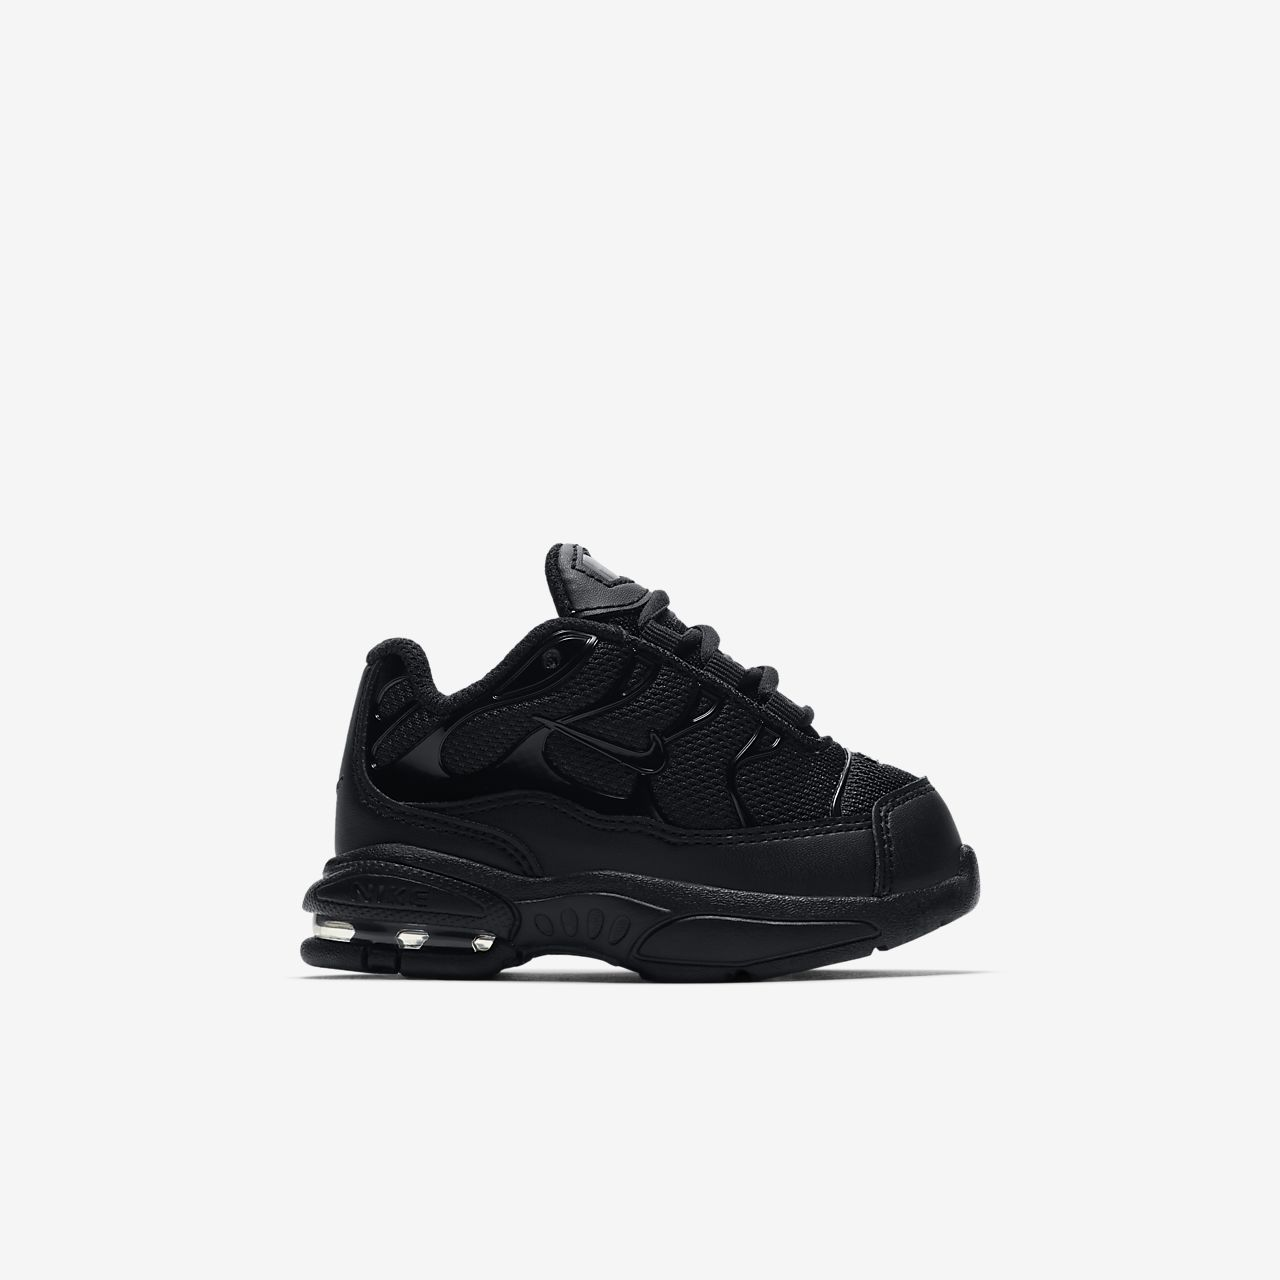 a0d3691f4f5 Nike Little Air Max Plus Baby & Toddler Shoe. Nike.com CA